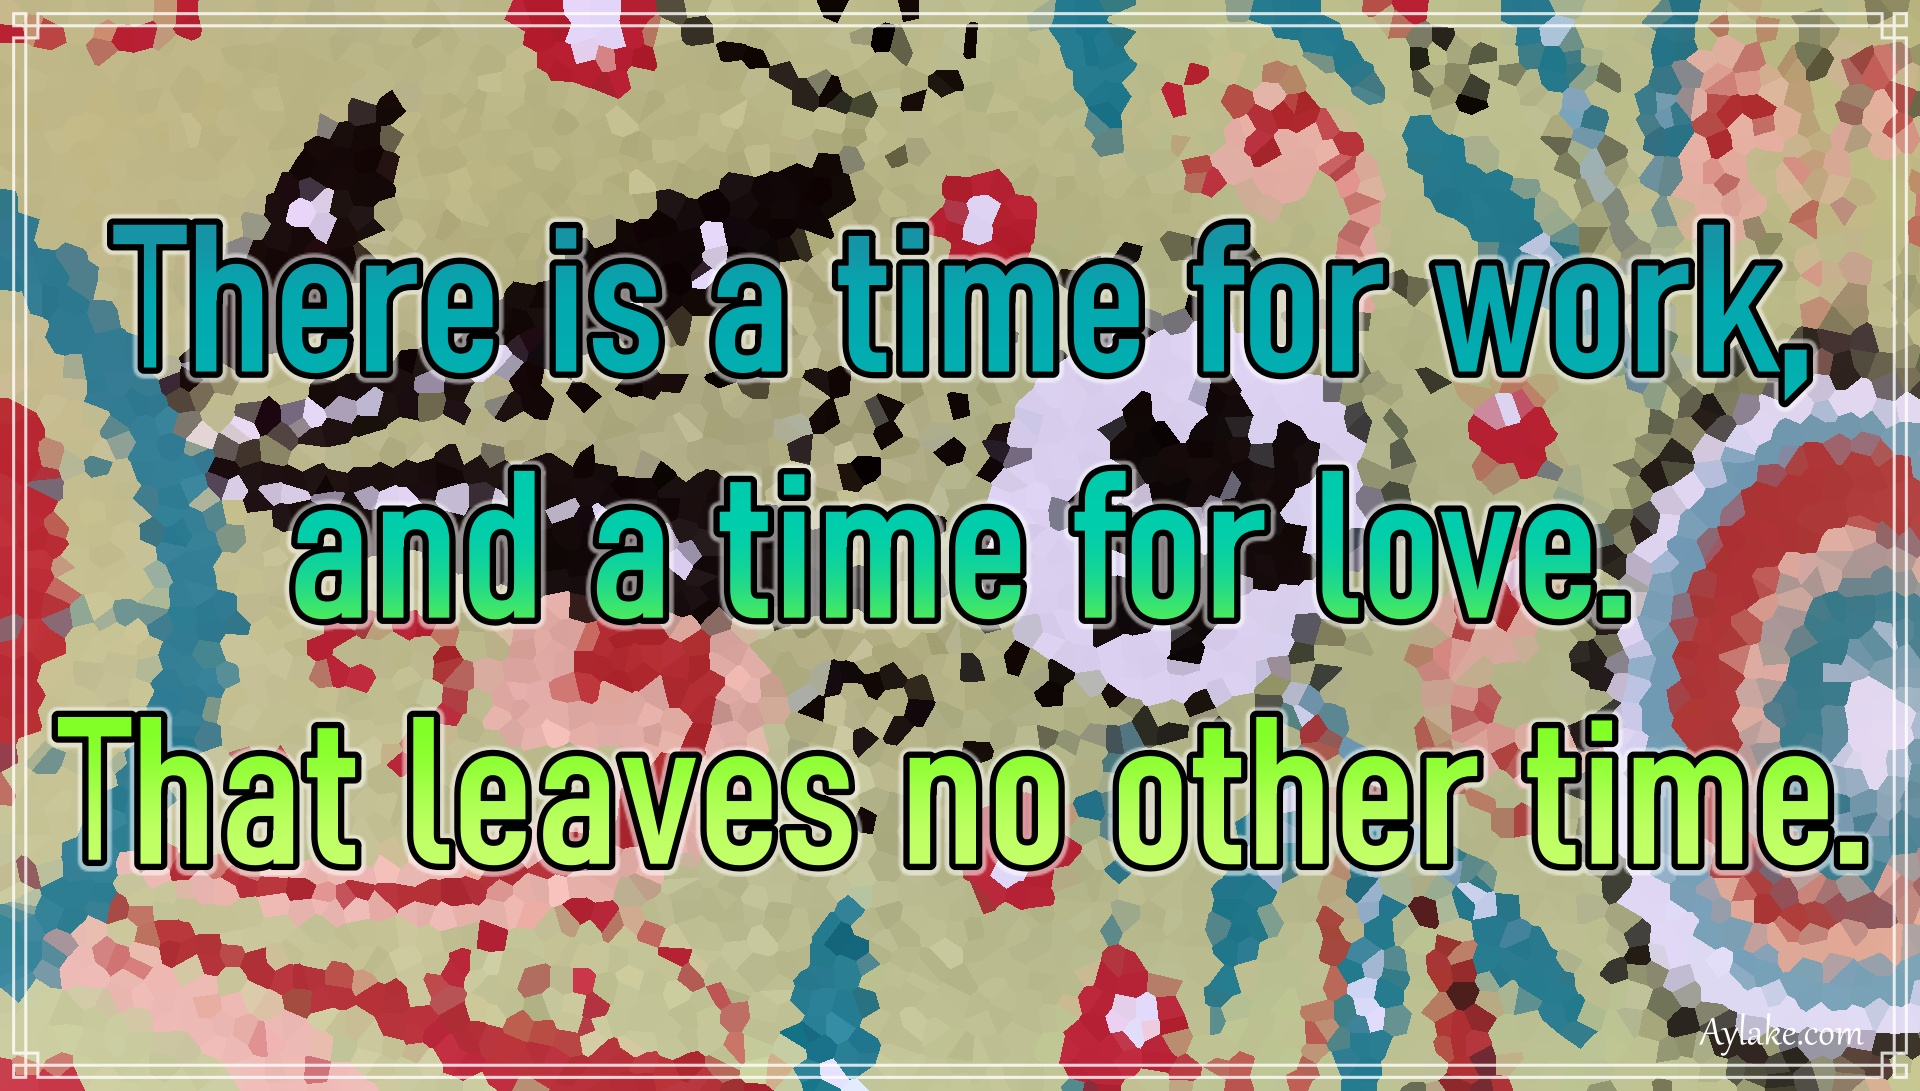 Famous quotes There is a time for work and a time for love That leaves no other time Aylake